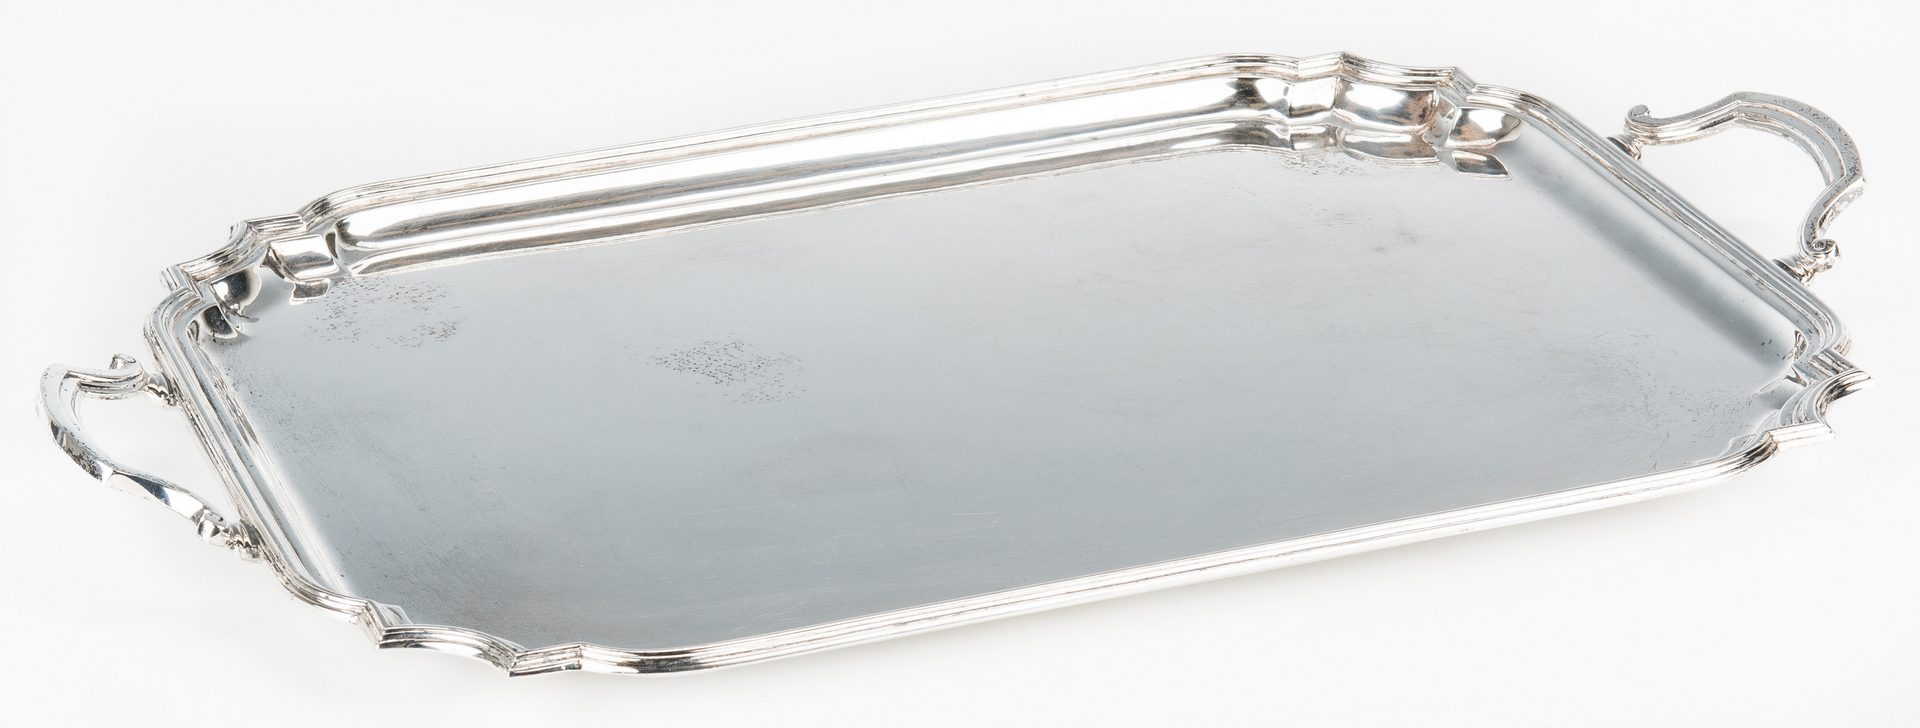 Lot 451: Industria Argentina Rectangular Sterling Silver Tray